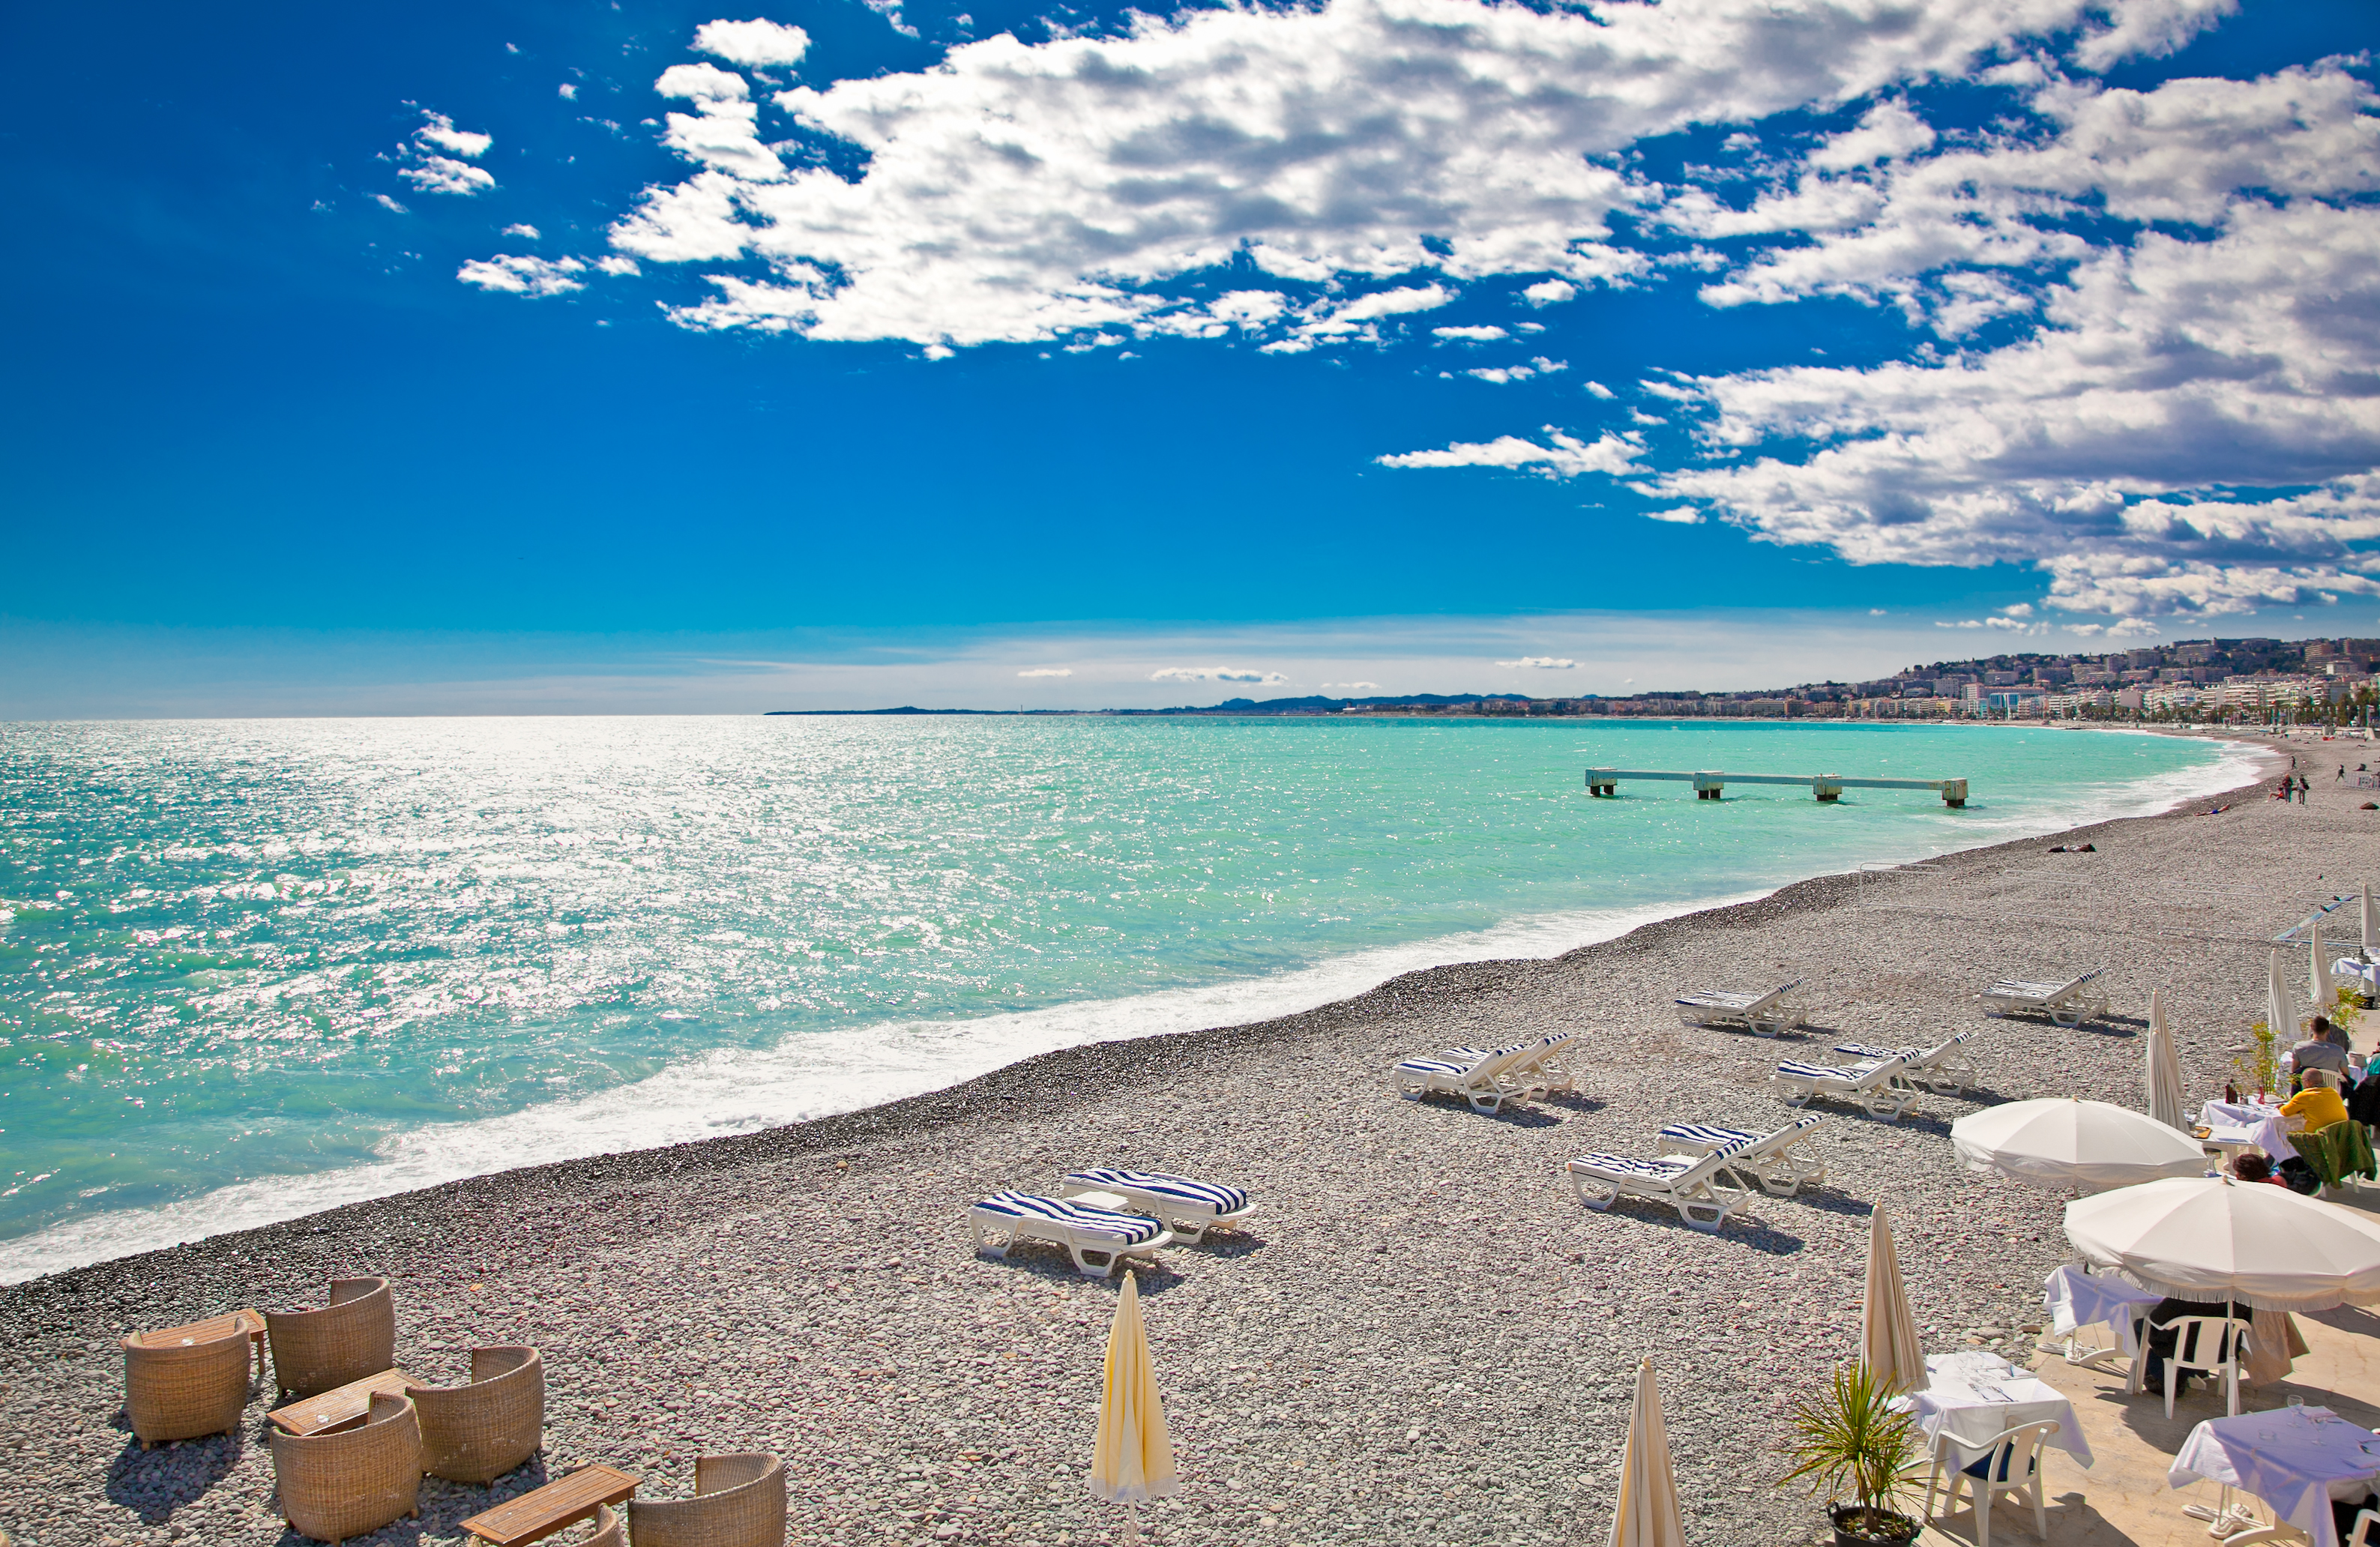 rocky beach of Nice, South of France. Bright blue water and blue sky.